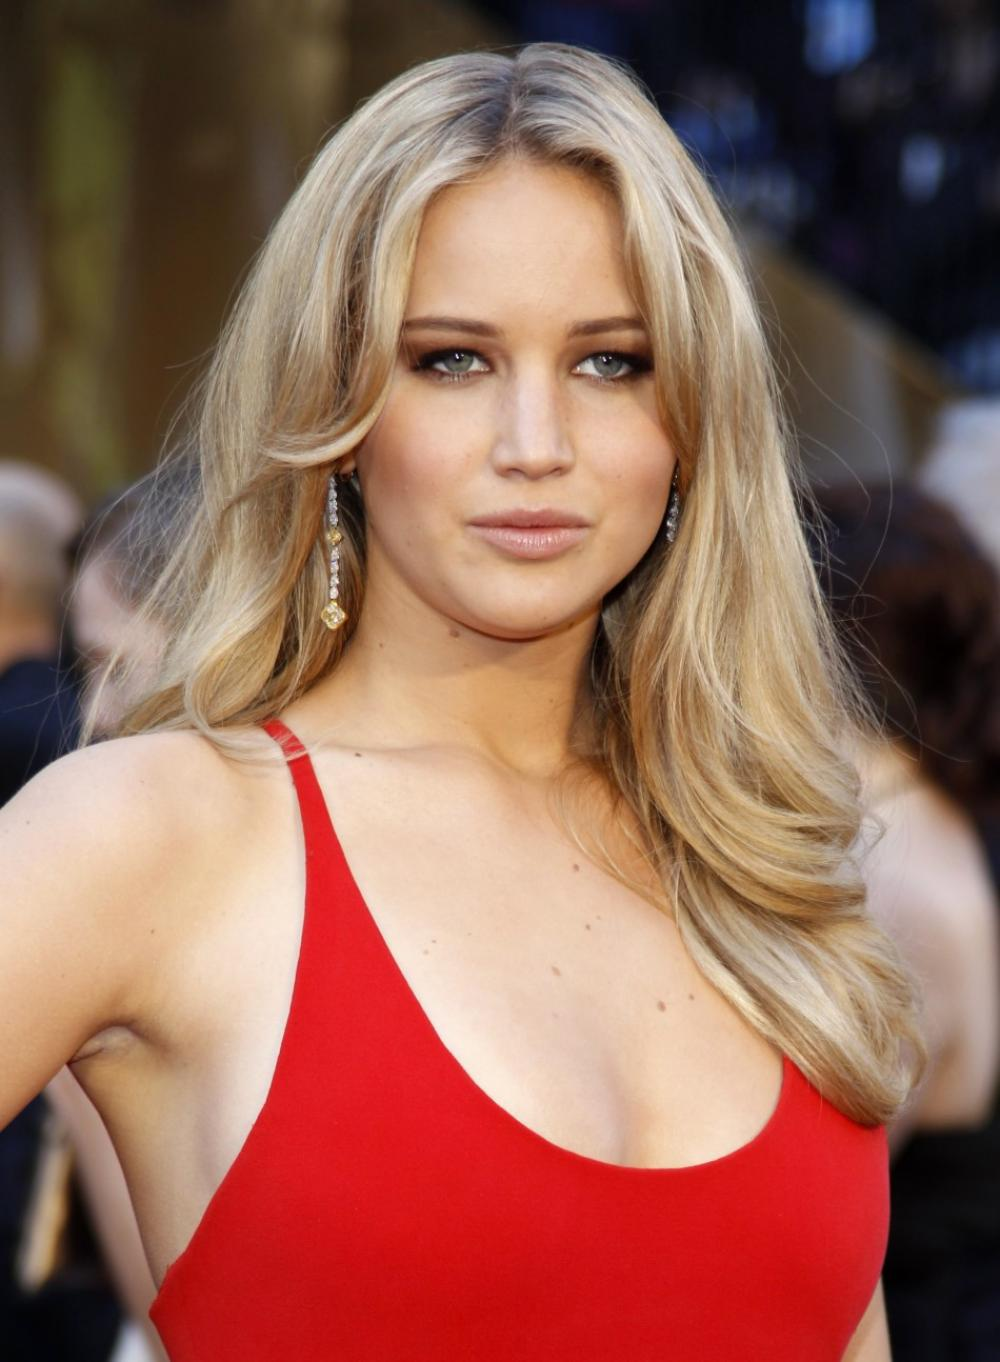 Hot Jennifer Lawrence in Red Dress